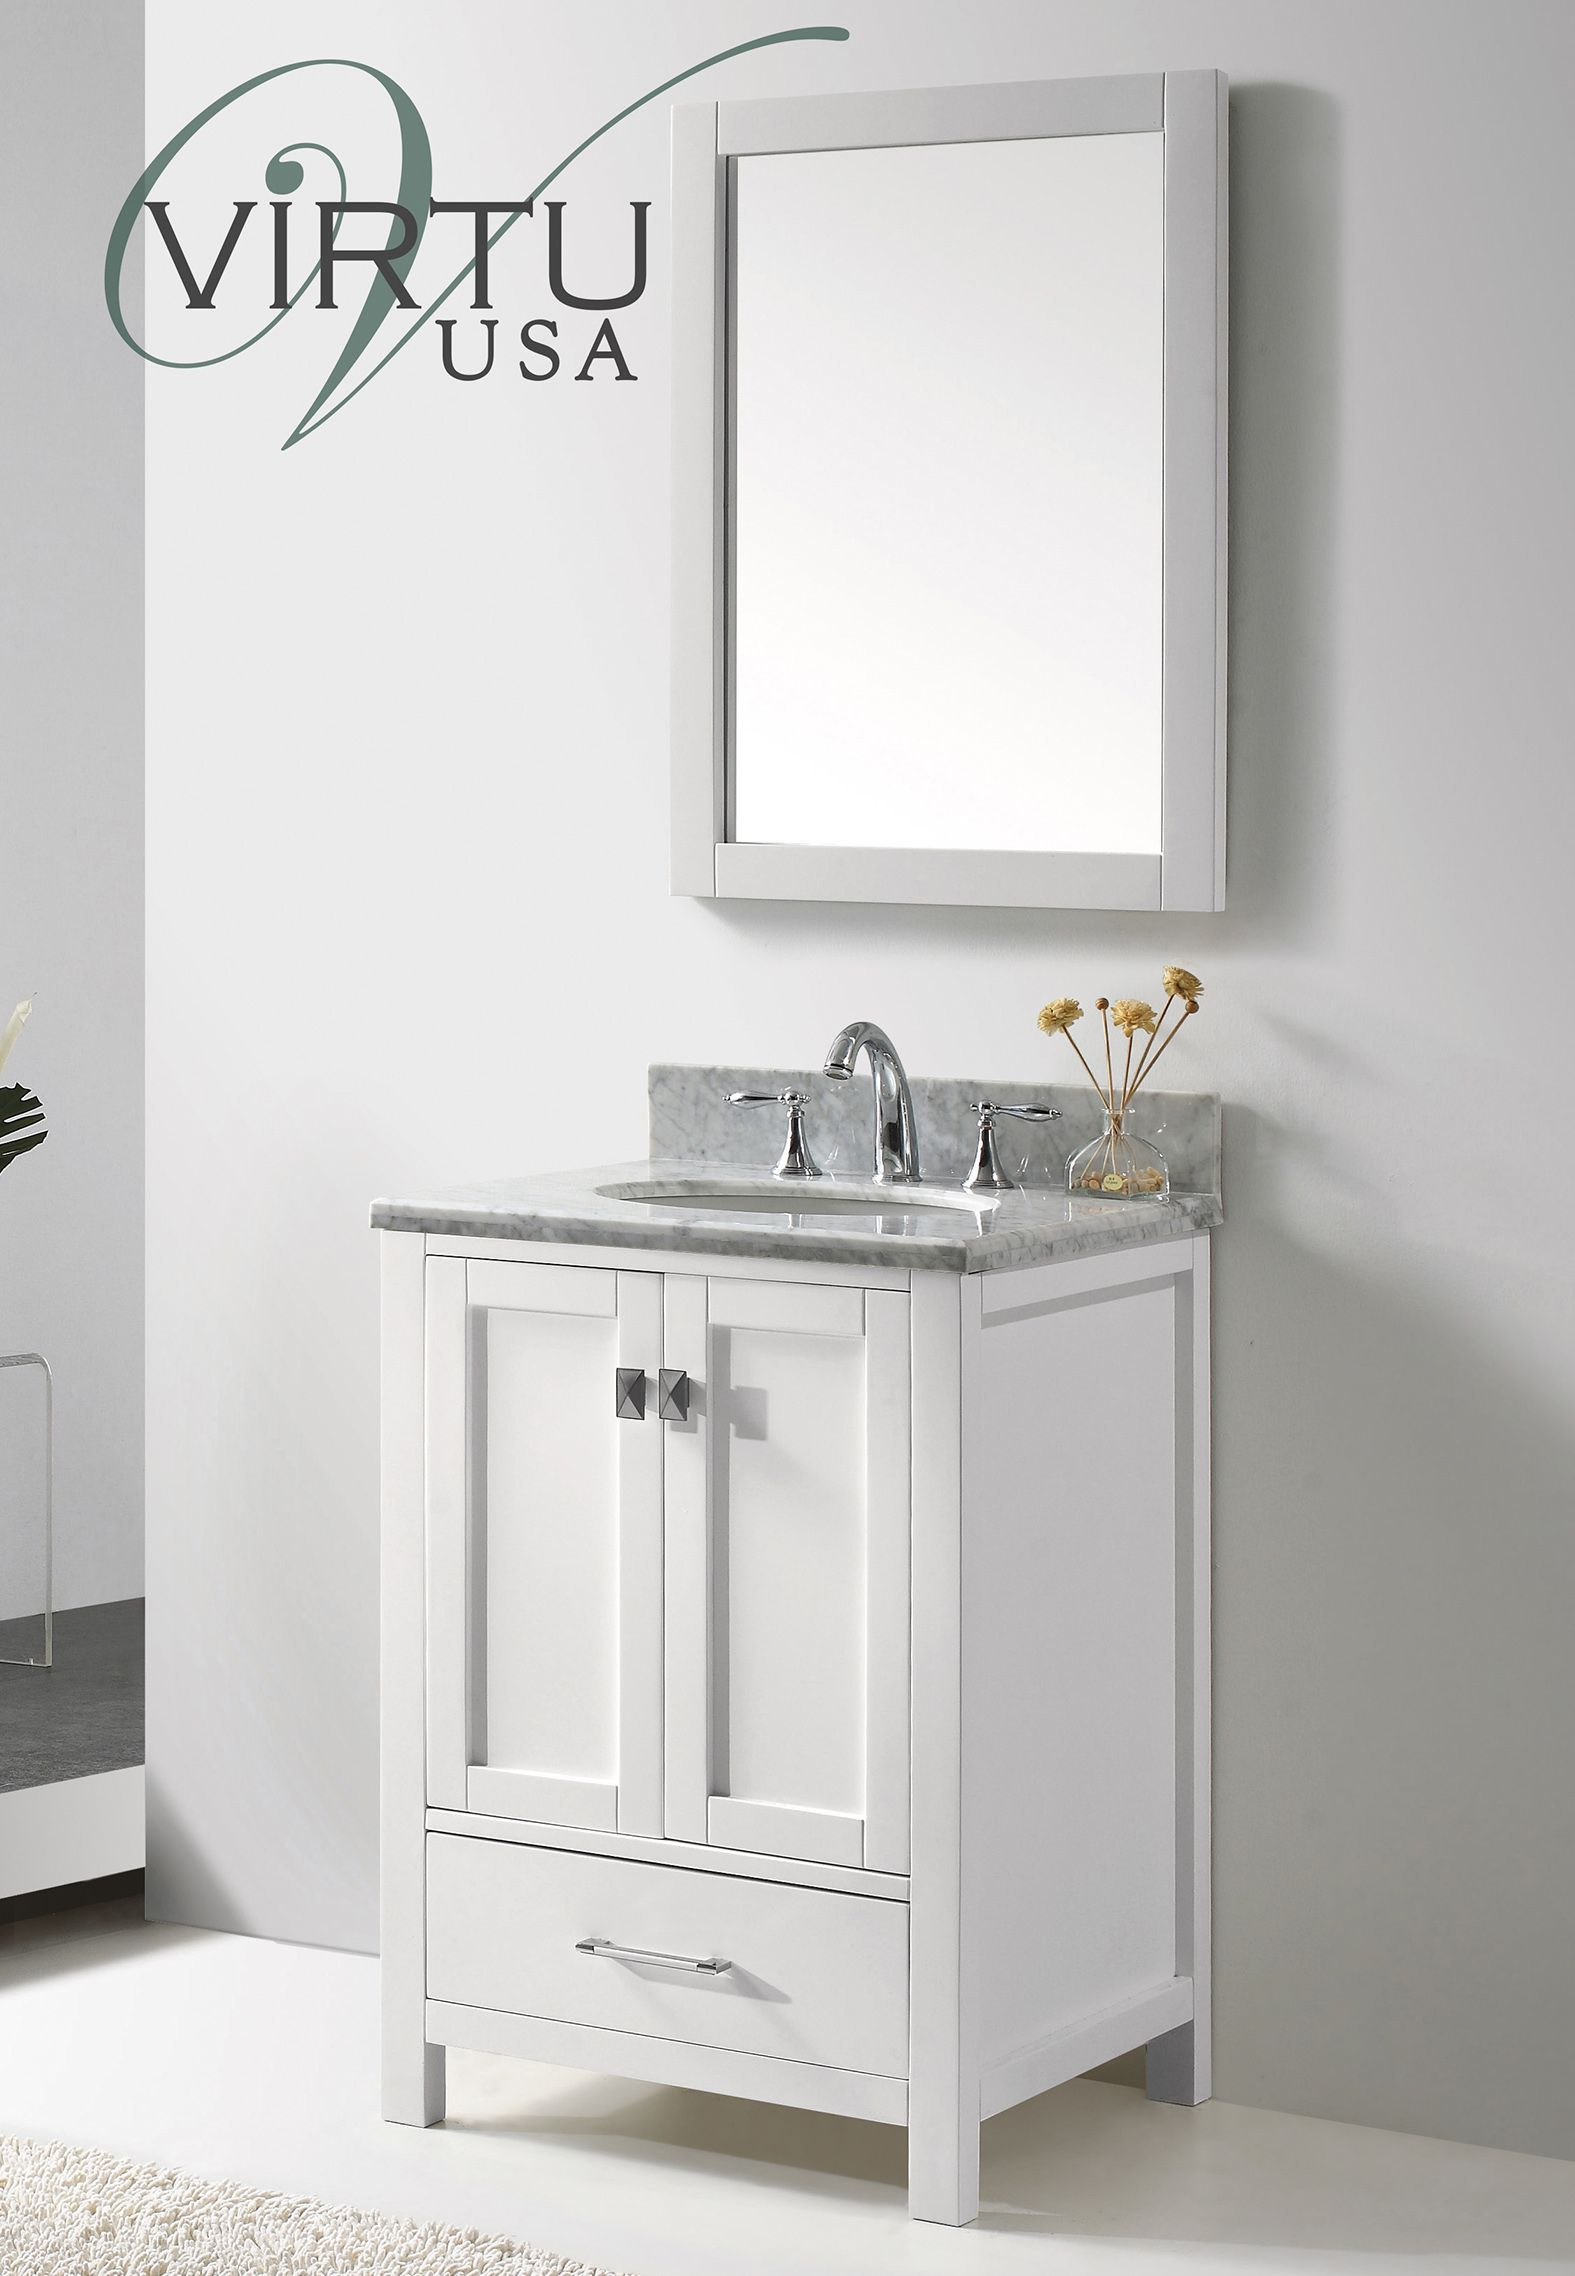 Abodo 24 Inch Transitional Bathroom Vanity White Finish Set